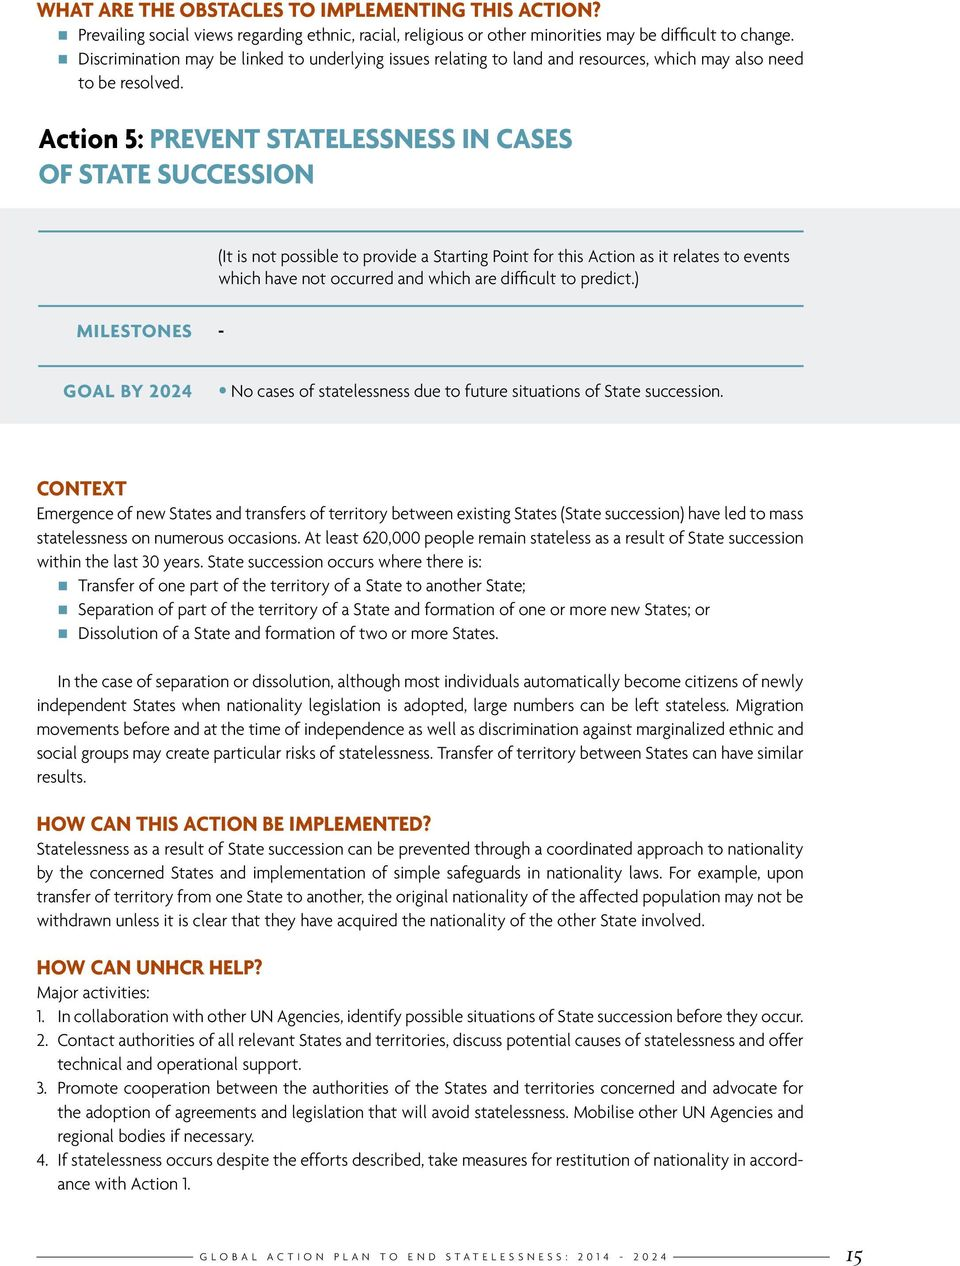 Action 5: PREVENT STATELESSNESS IN CASES OF STATE SUCCESSION (It is not possible to provide a Starting Point for this Action as it relates to events which have not occurred and which are difficult to